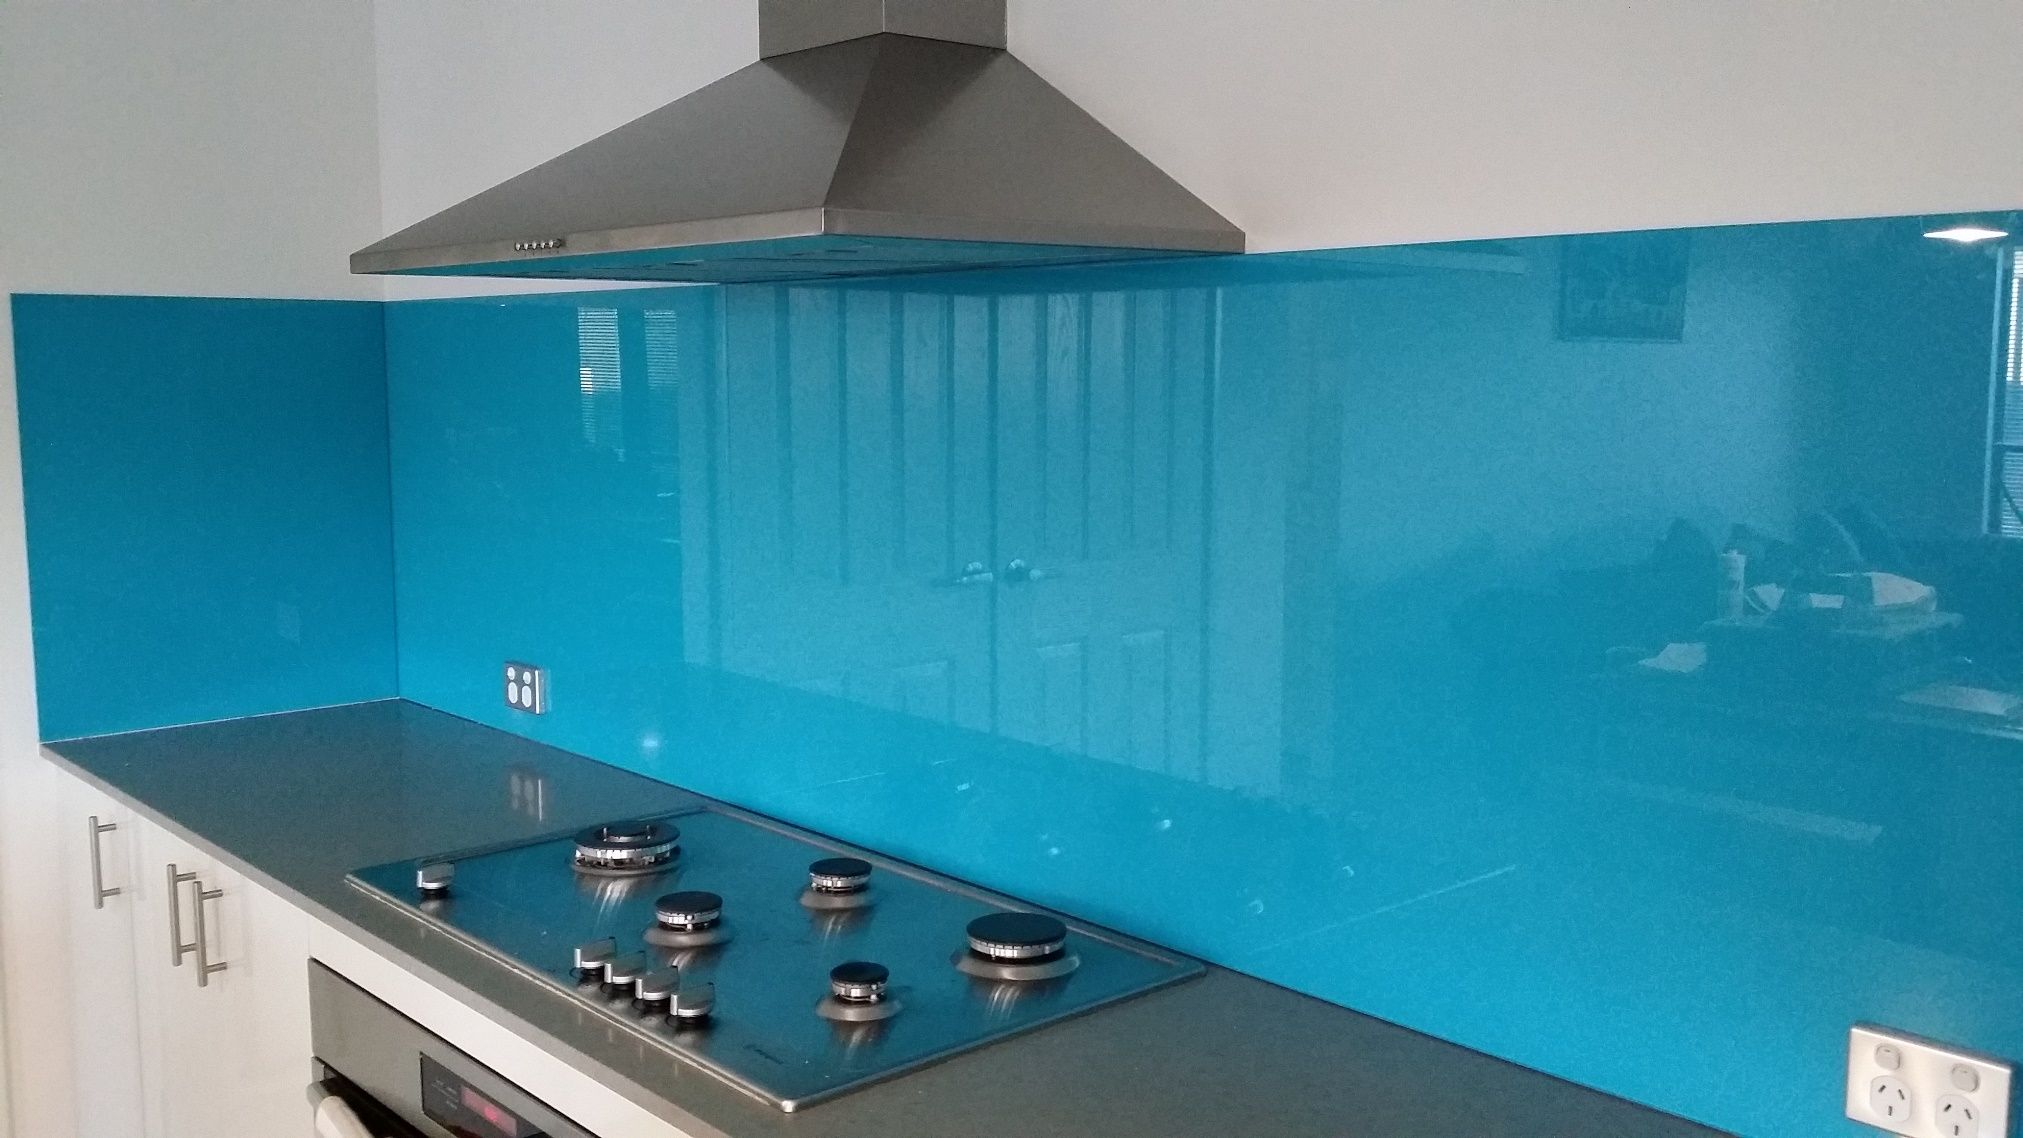 blue glass kitchen splashback - Google Search | Owens | Pinterest ...